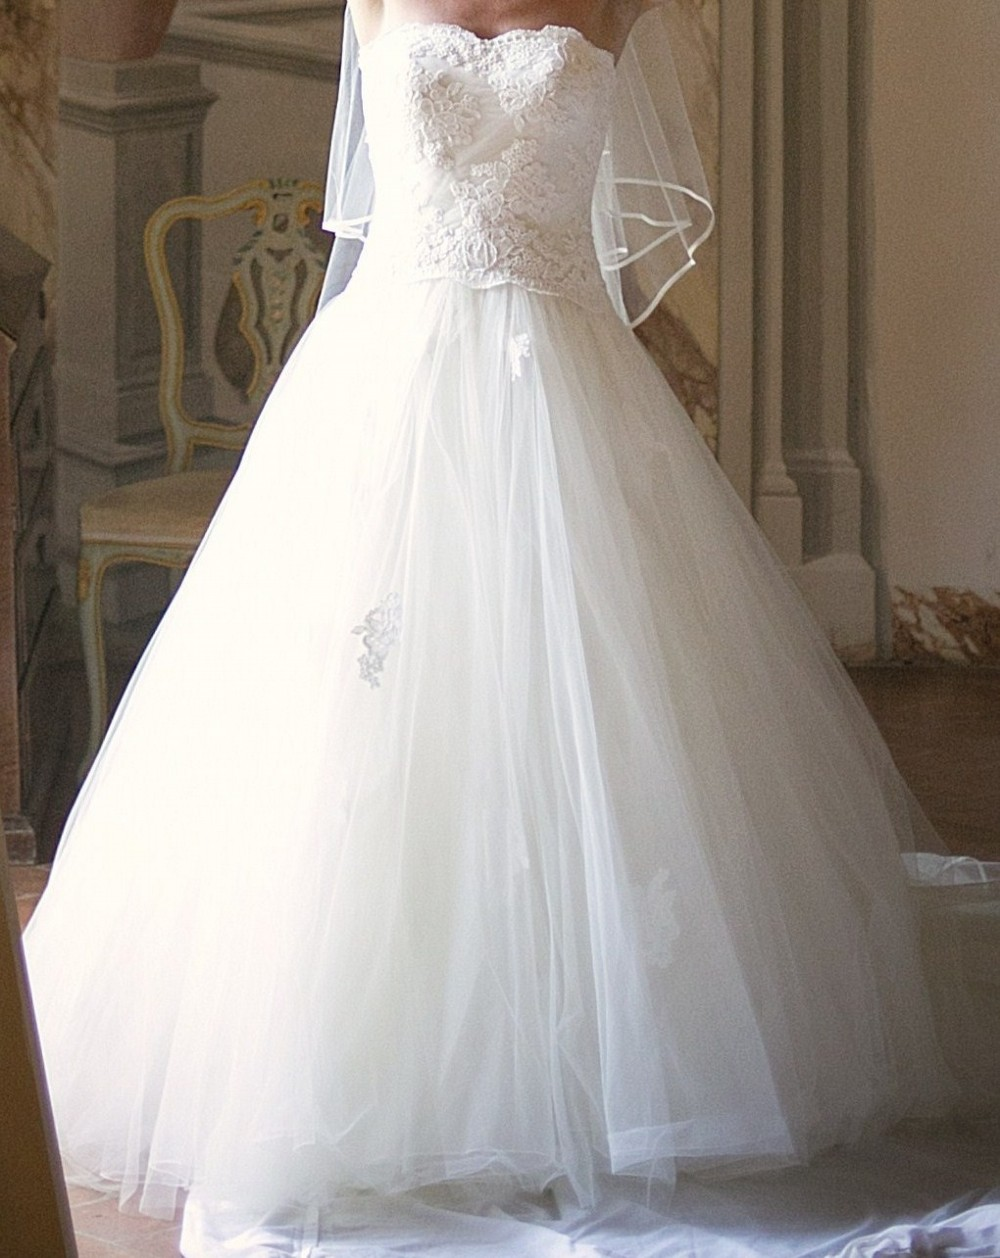 Lusan mandongus sassi second hand wedding dress on sale 57 for Second hand wedding dresses san diego